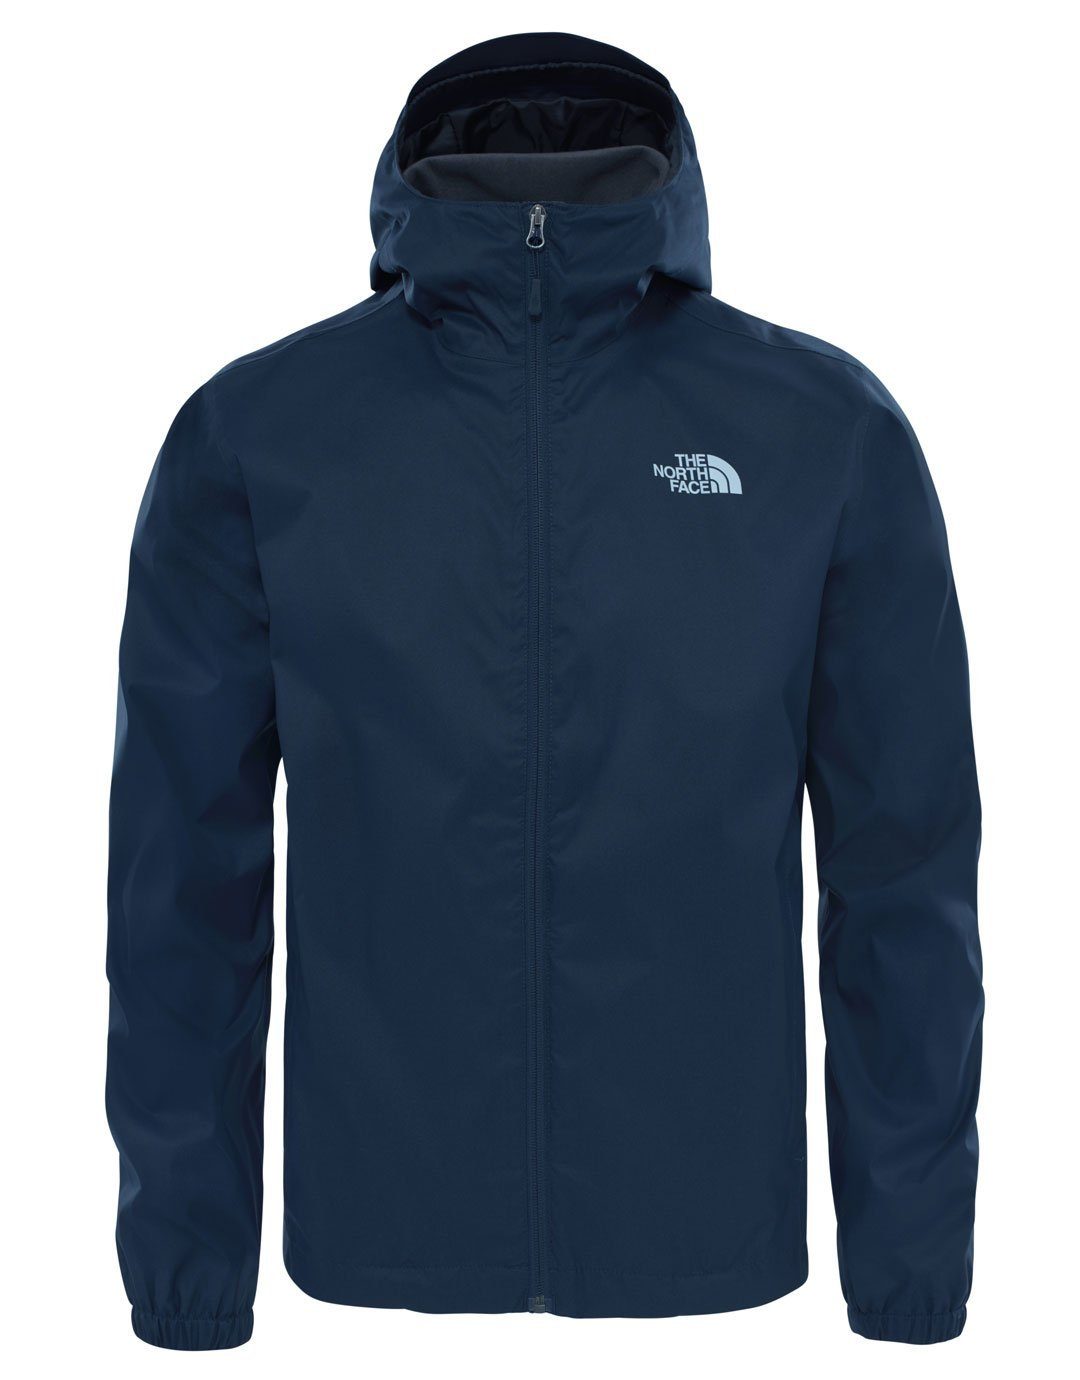 The north face. THE NORTH FACE QUEST JACKET – GIACCA UOMO BLU 758a84ef3796